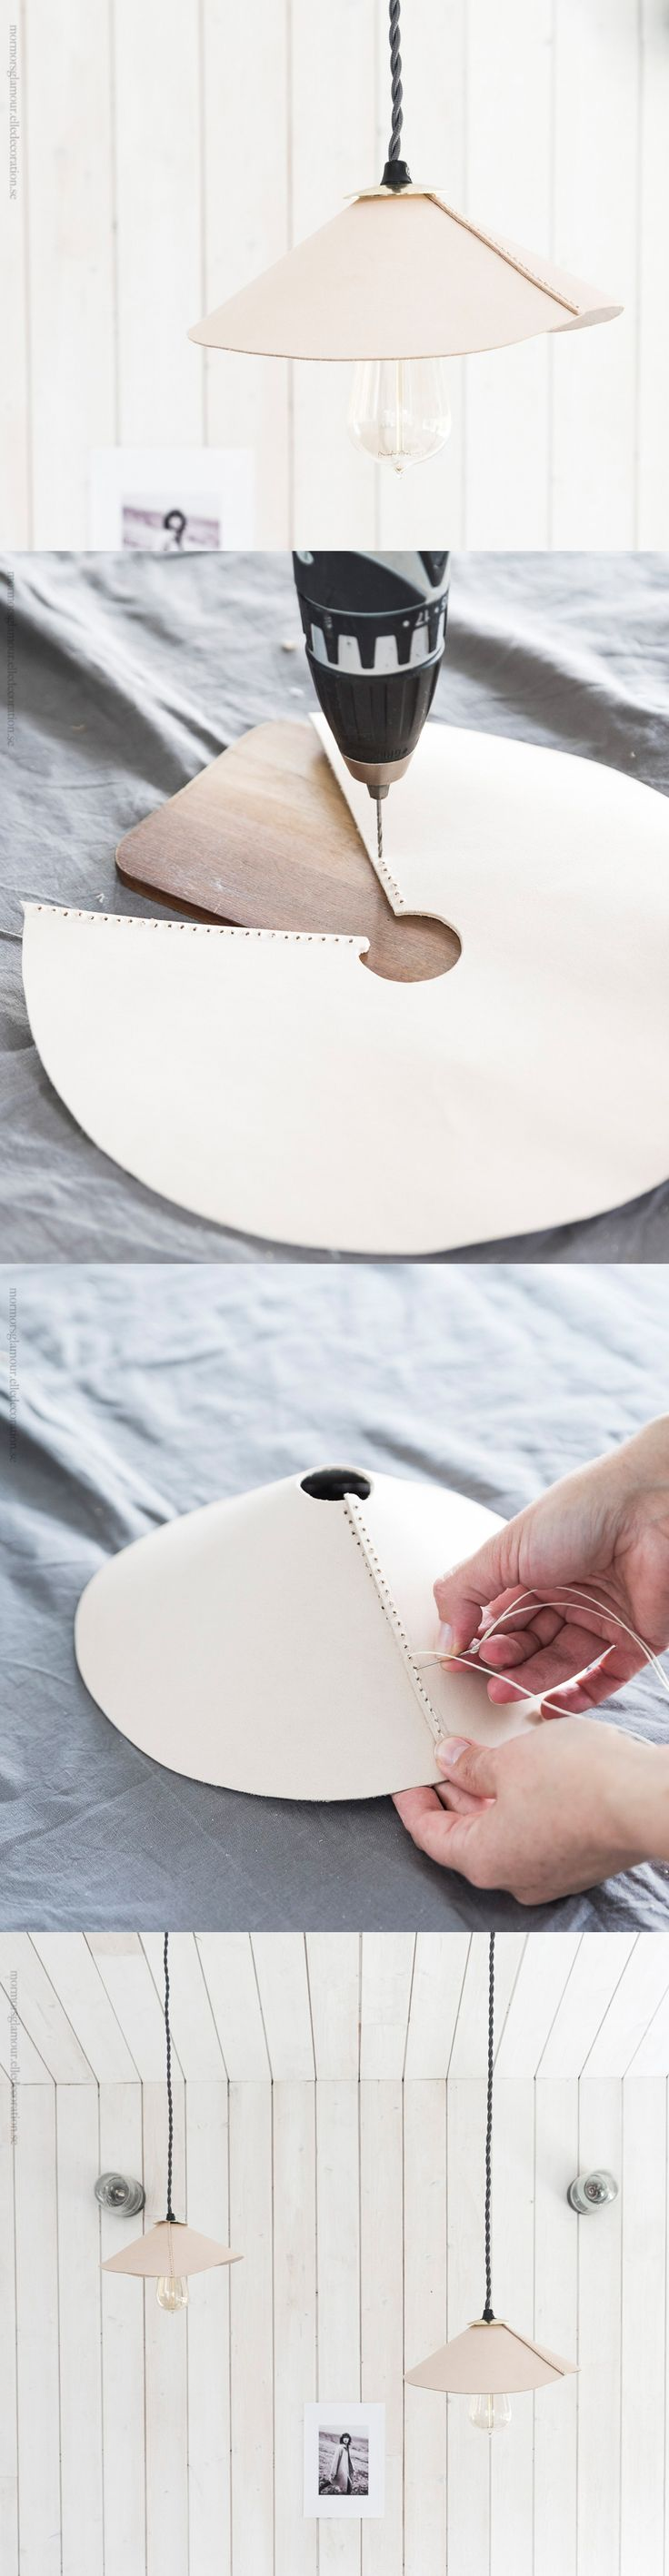 How to make a lamp in leather